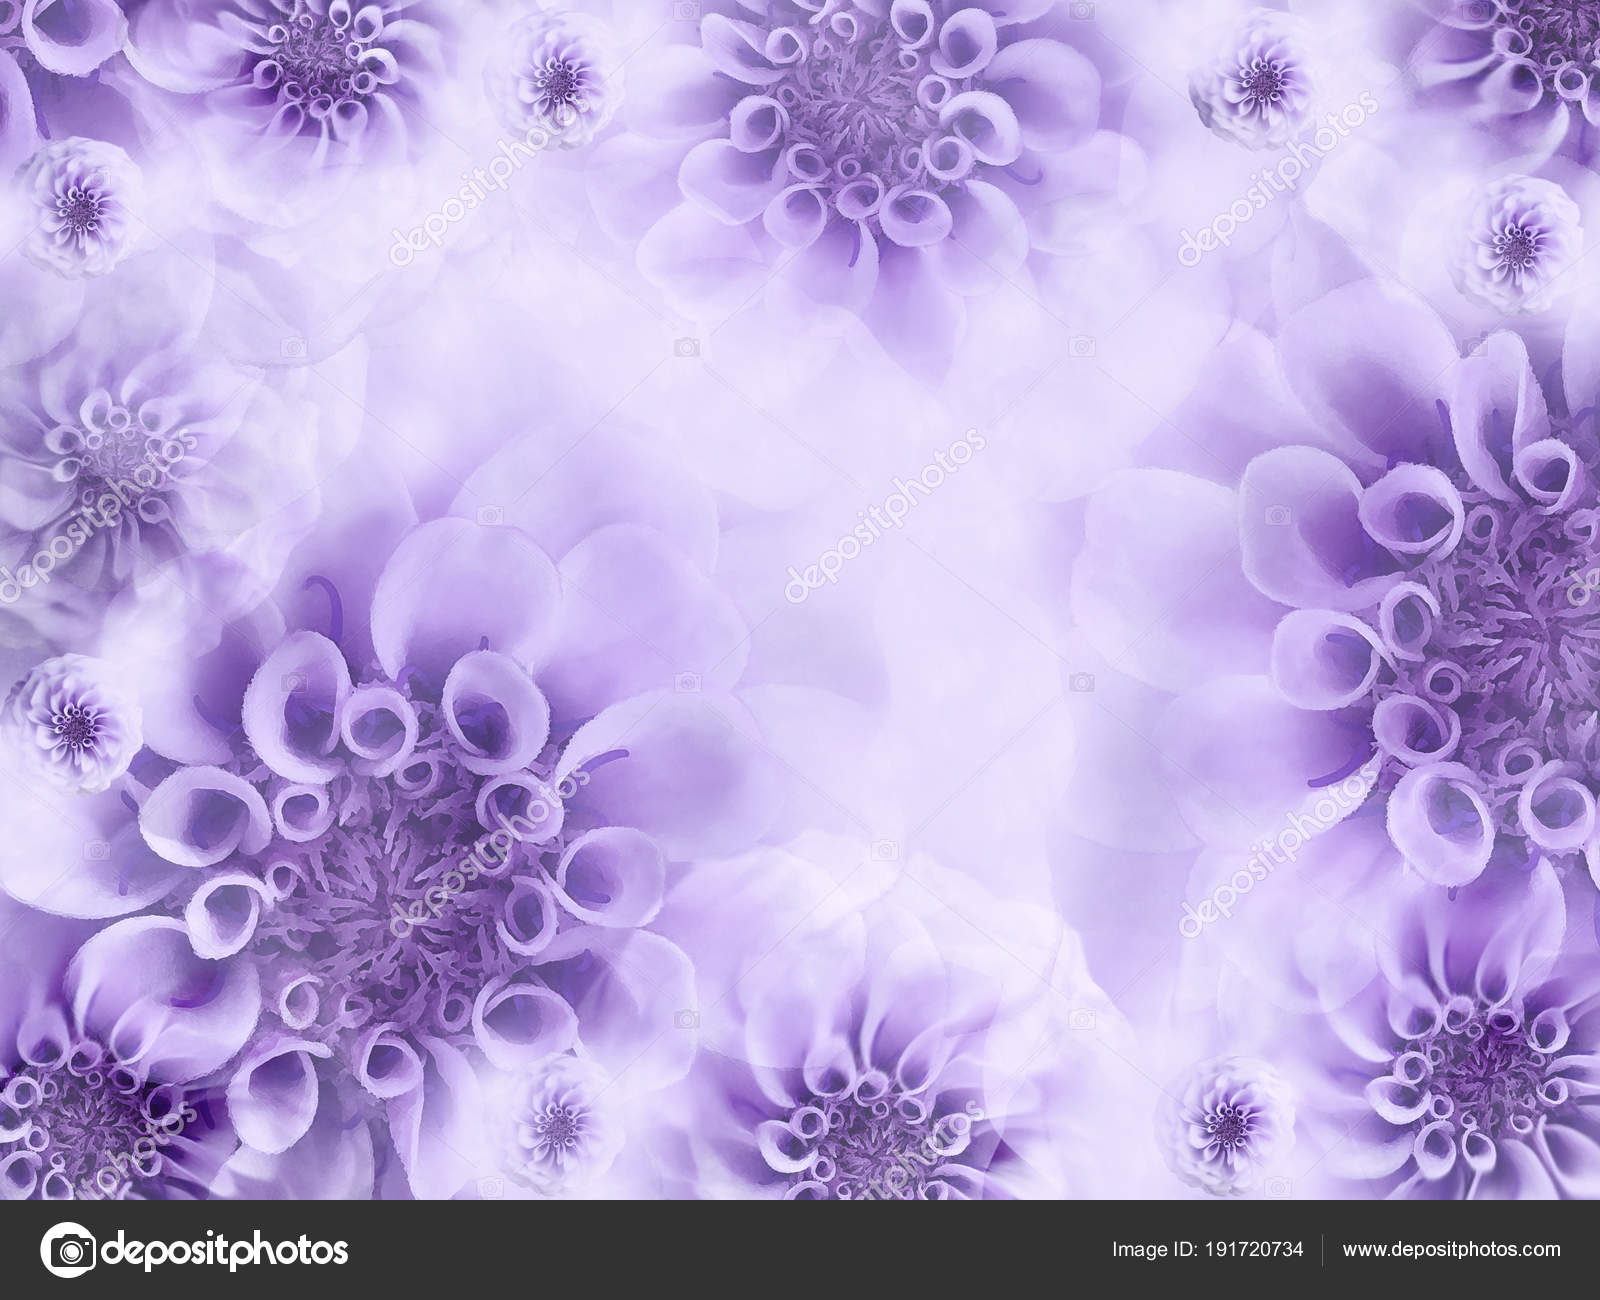 Floral White Violet Beautiful Background Wallpapers Light Purple